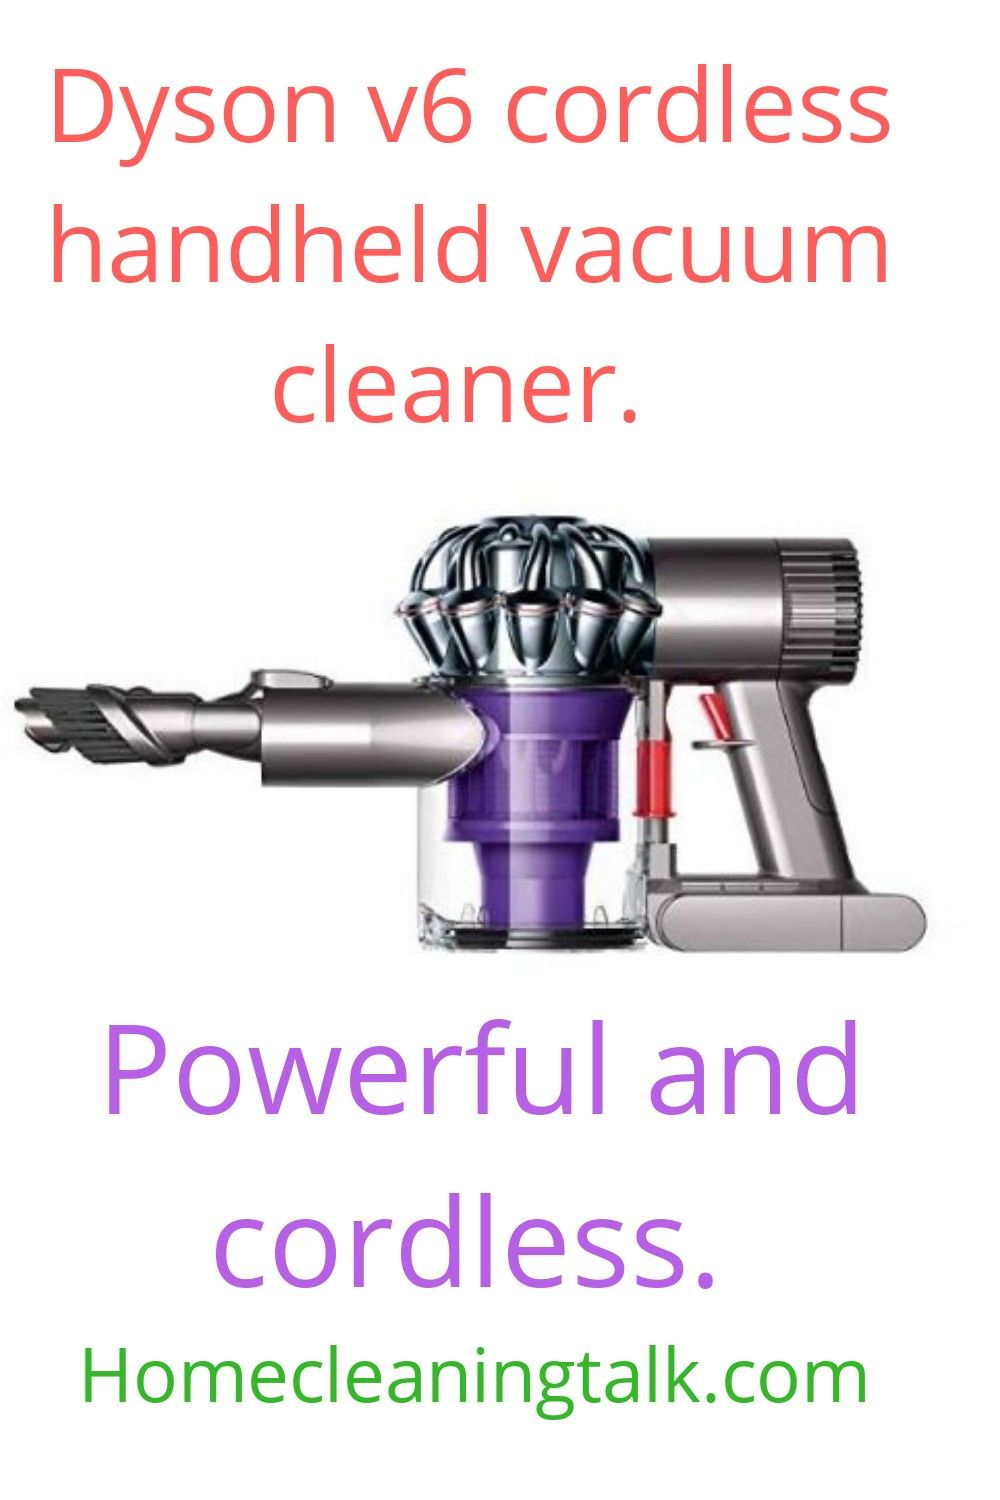 Dyson v6 cordless handheld vacuum cleaner. in 2020